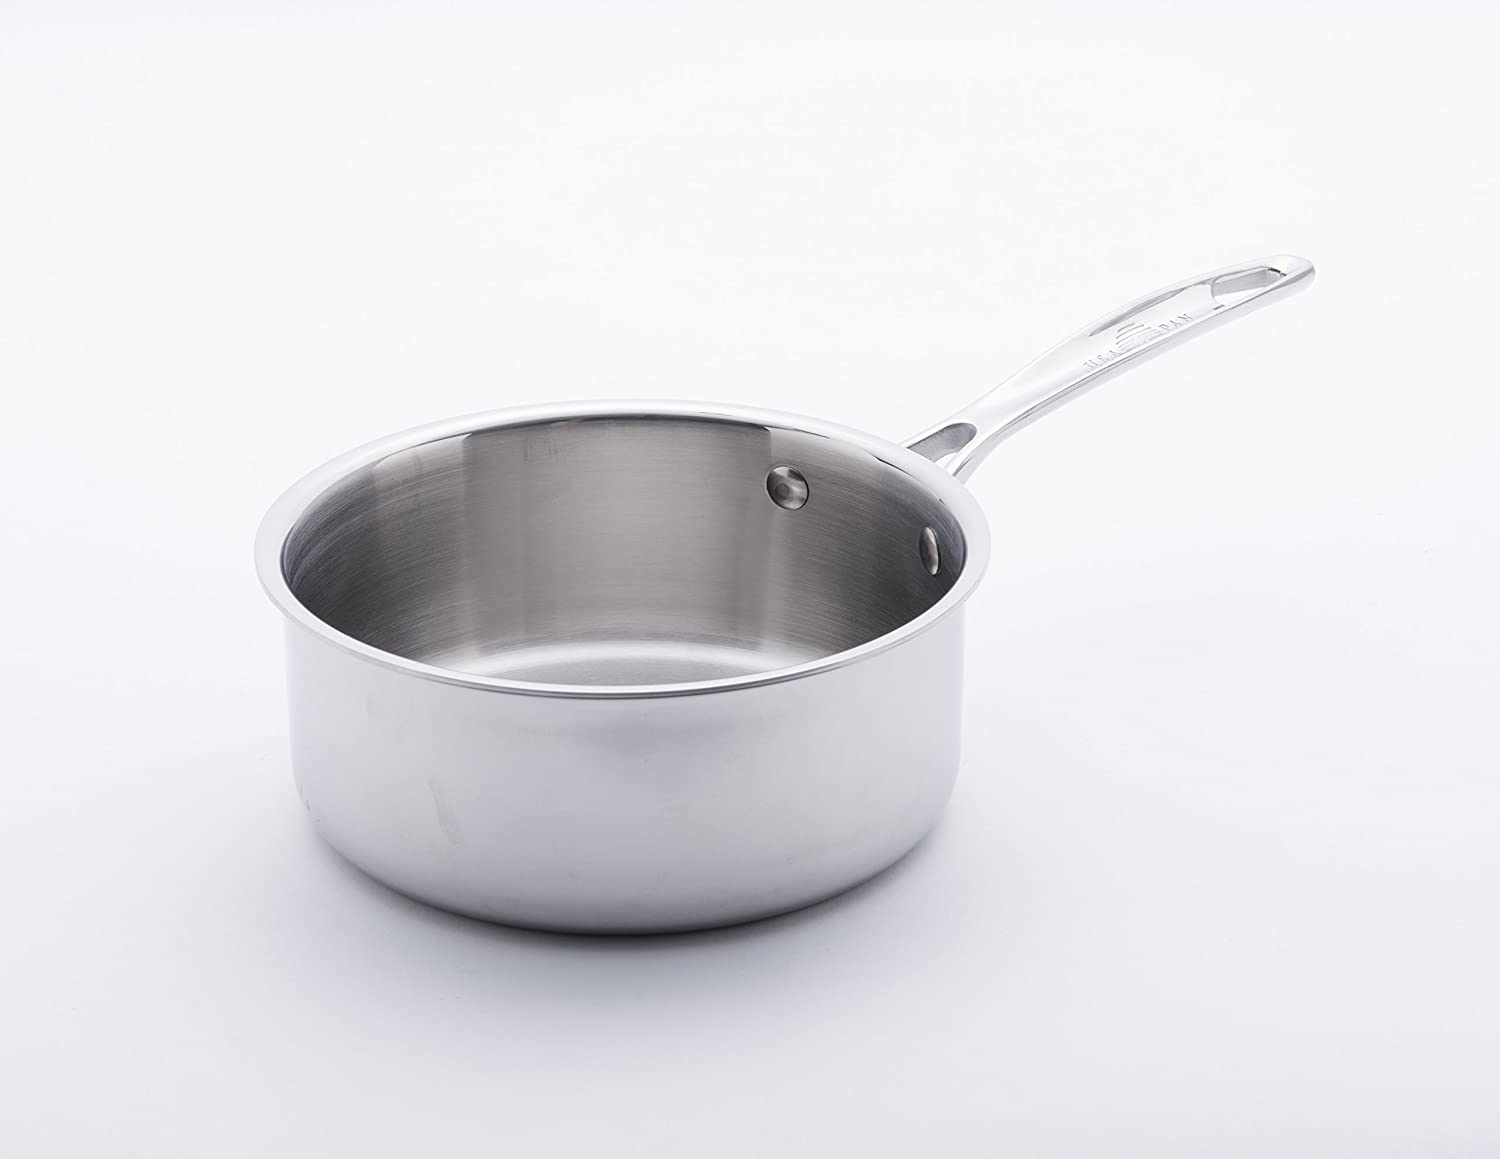 USA Pan 1505CW-1 Cookware 5-Ply Stainless Steel 8 Inch Sauce Pan with Cover Silver Oven and Dishwasher Safe Made in the USA 8-Inch